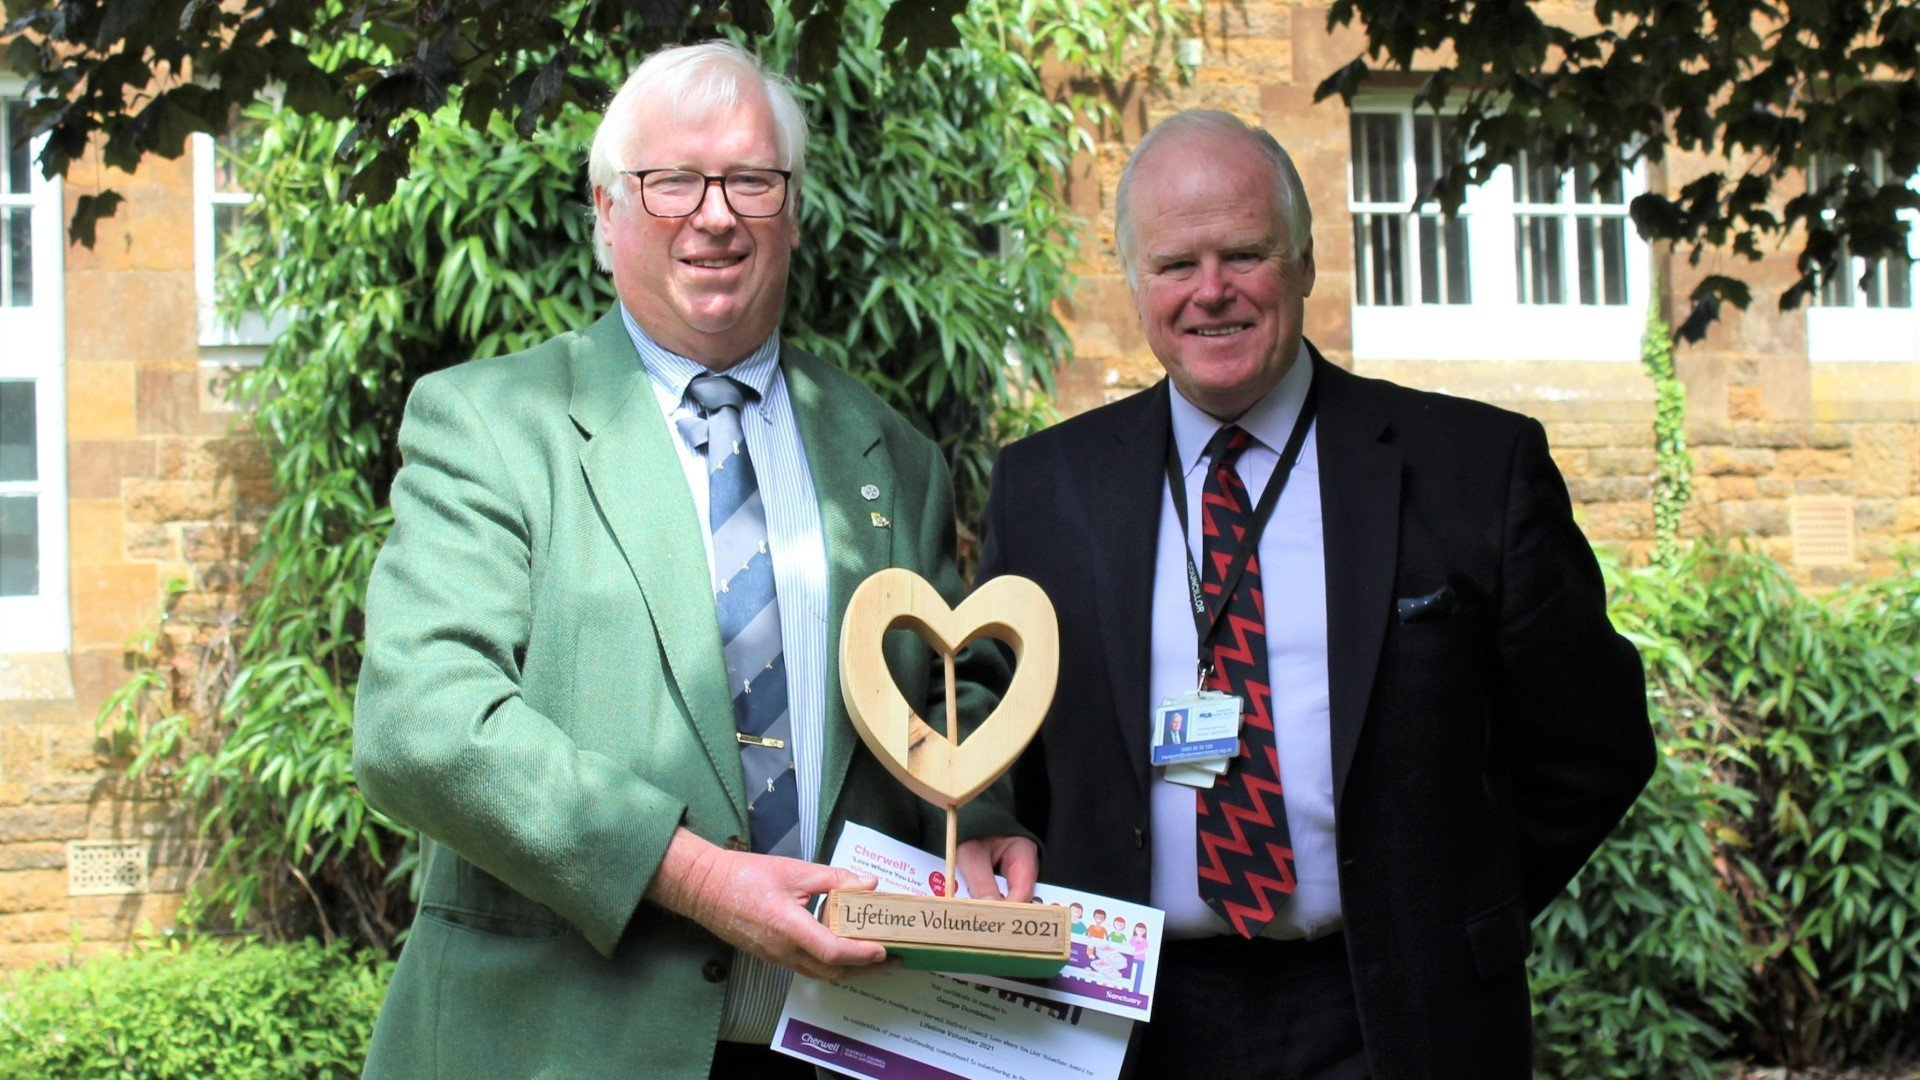 Volunteers recognised for outstanding contribution in Cherwell. Image: George Dumbleton with Cllr McHugh